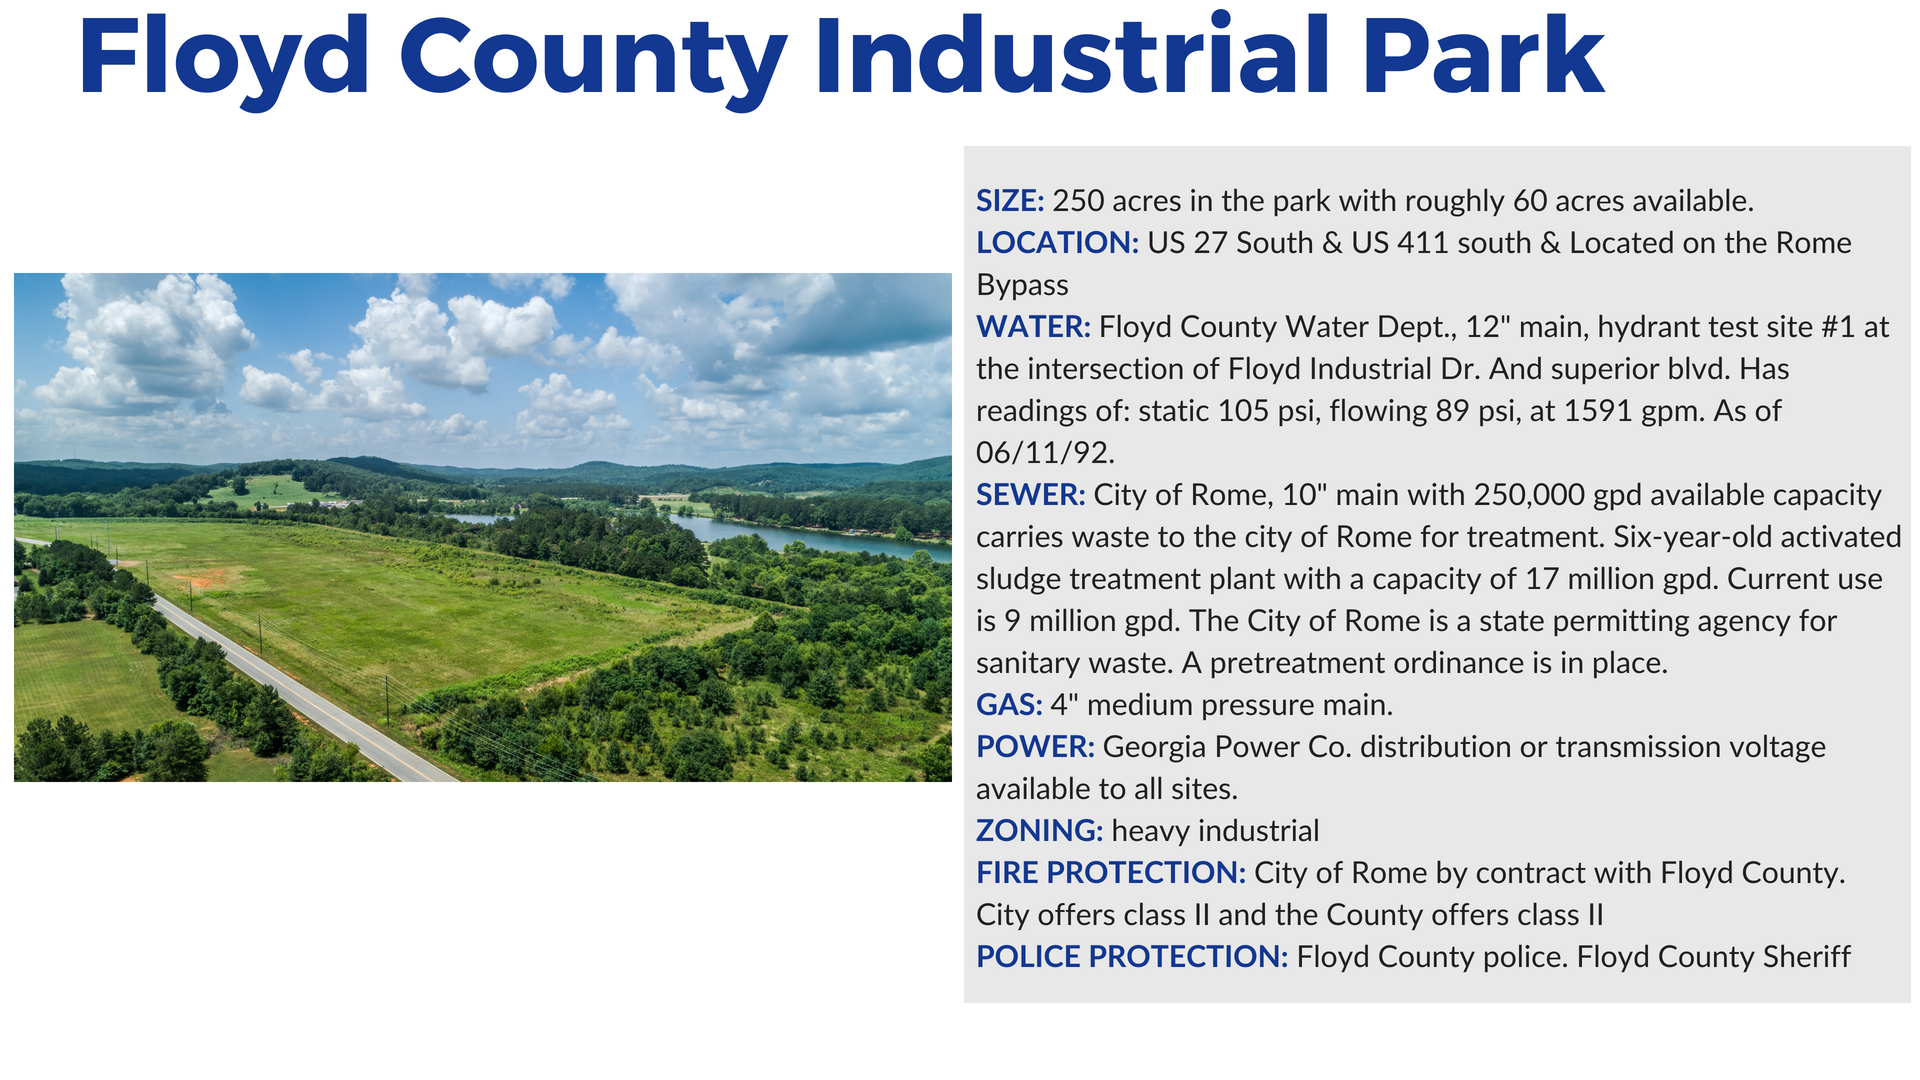 Floyd County Industrial Park in Rome Georgia and Floyd County Georgia